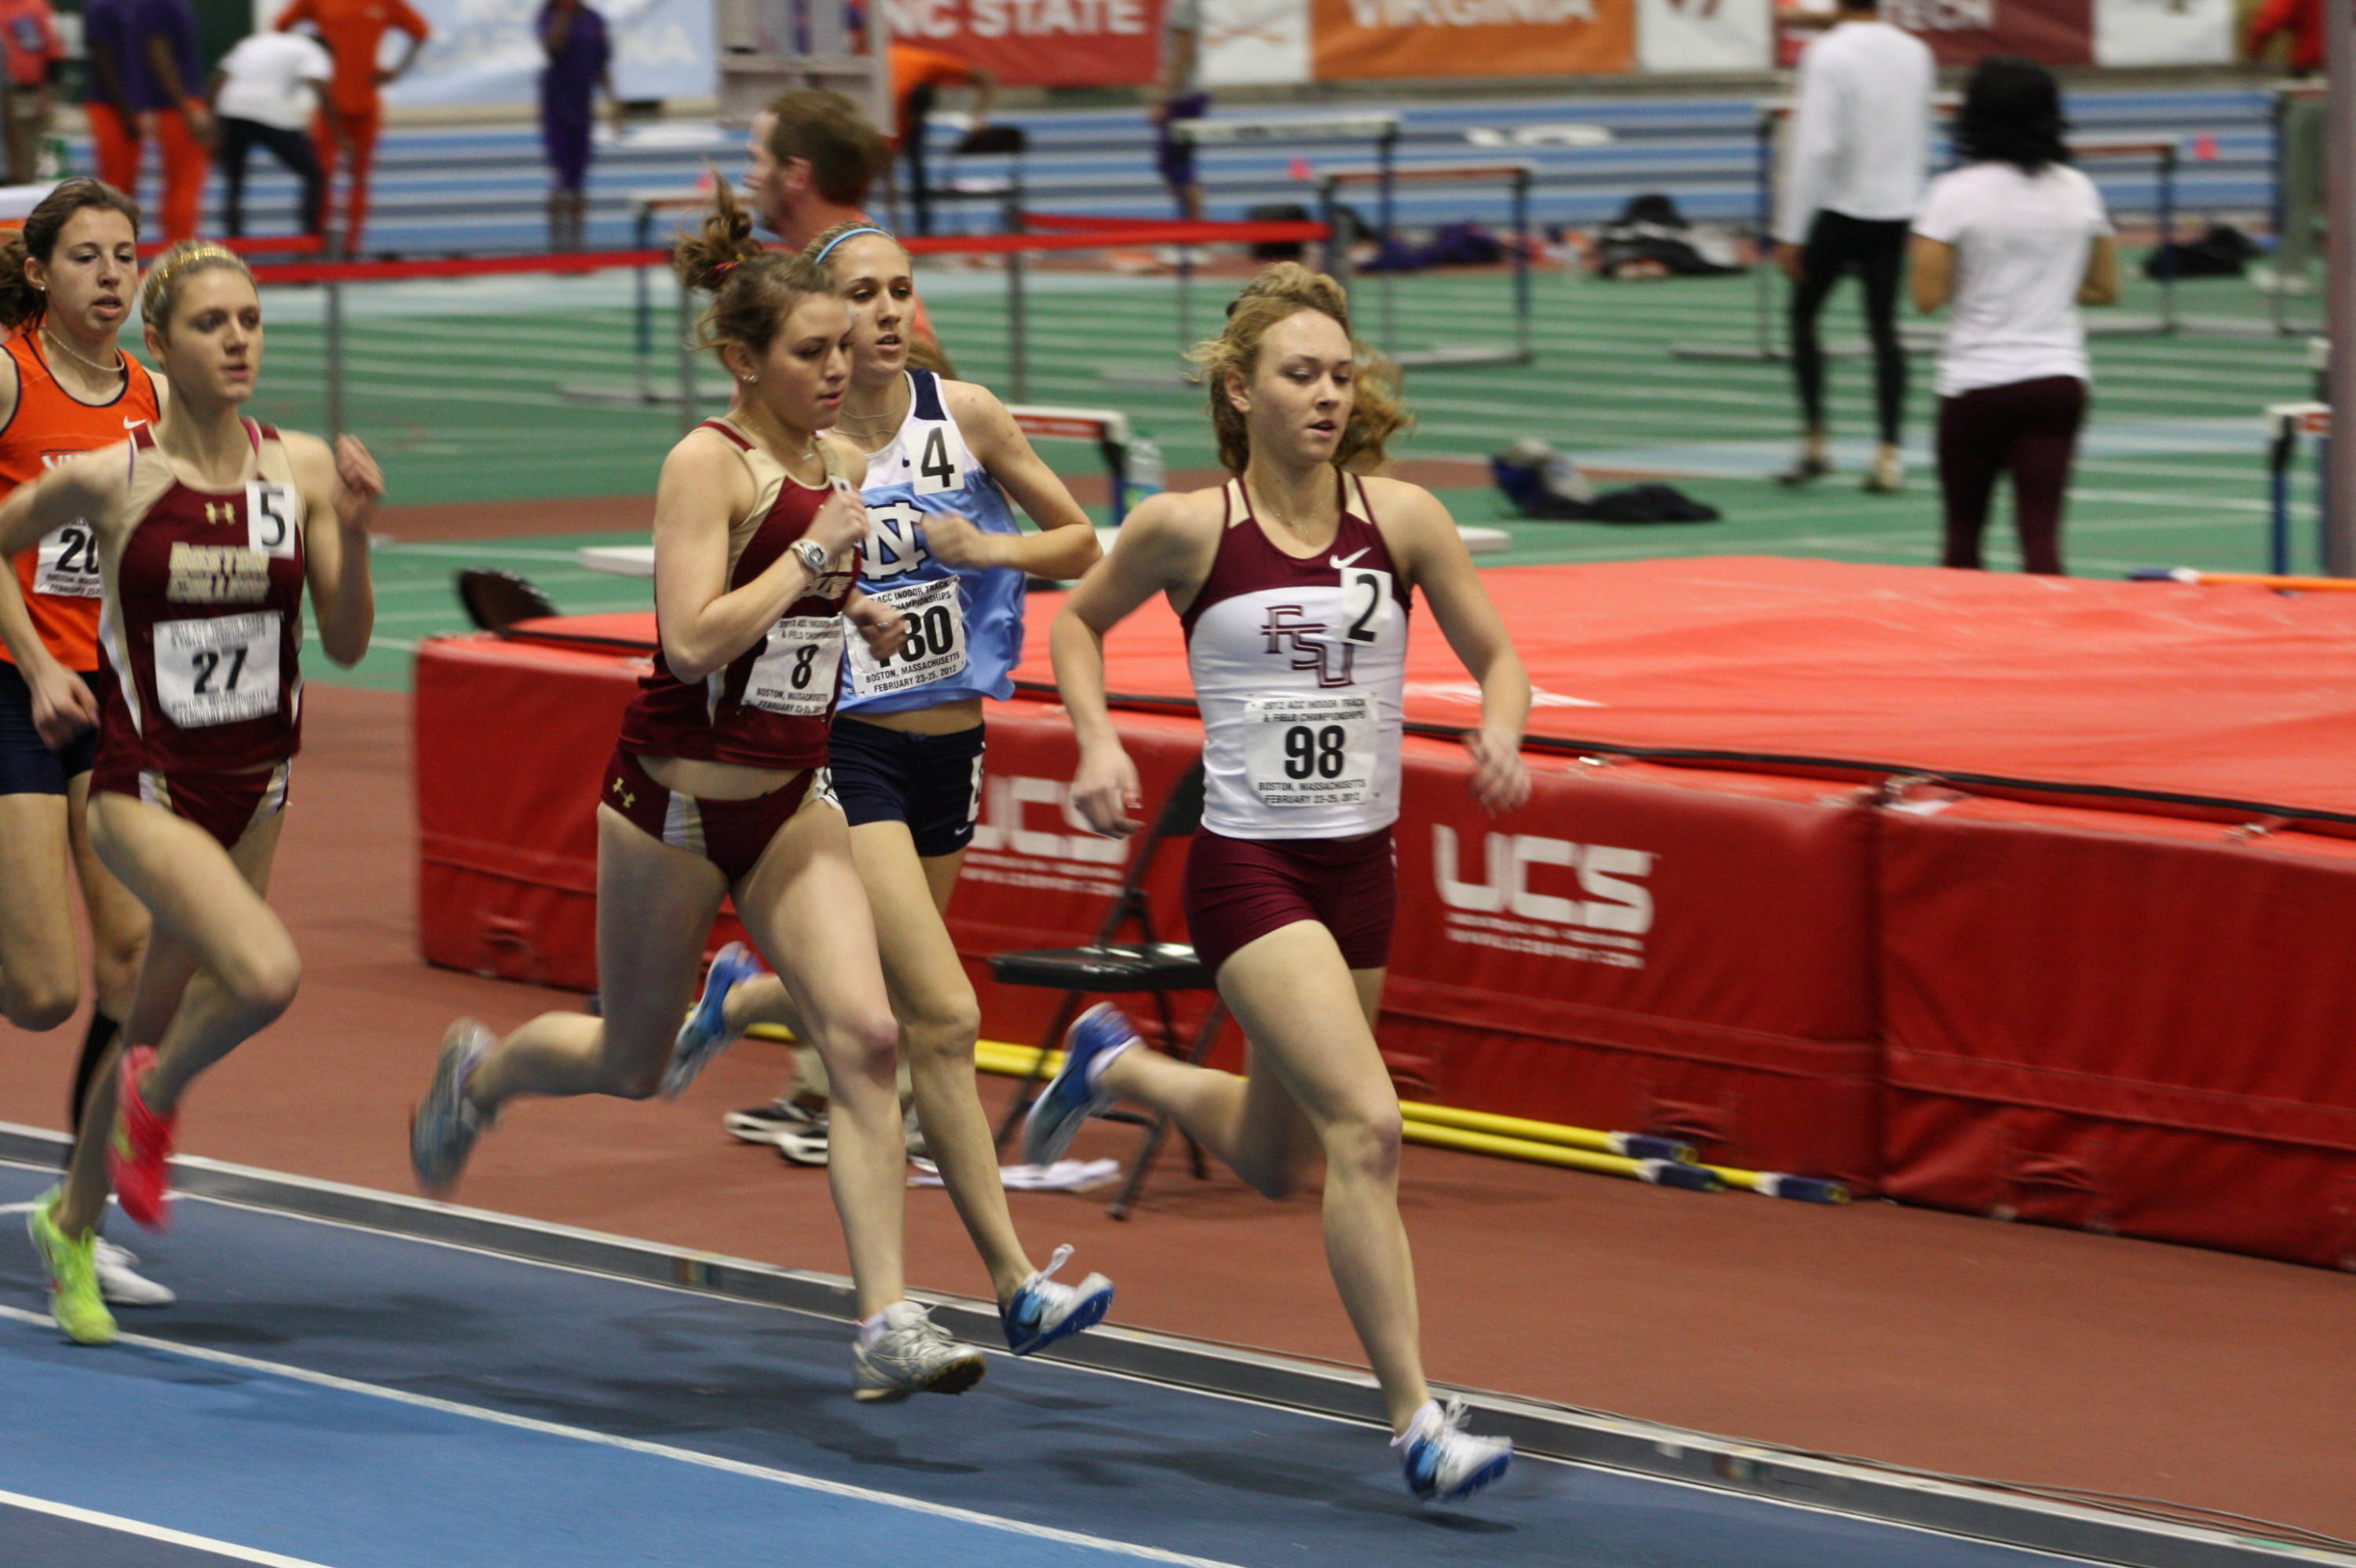 Aubree Worden leads the way early in her mile preliminary heat. She was one of three FSU freshmen - joining Colleen Quigley and Linden Hall - to qualify for Saturday's final.